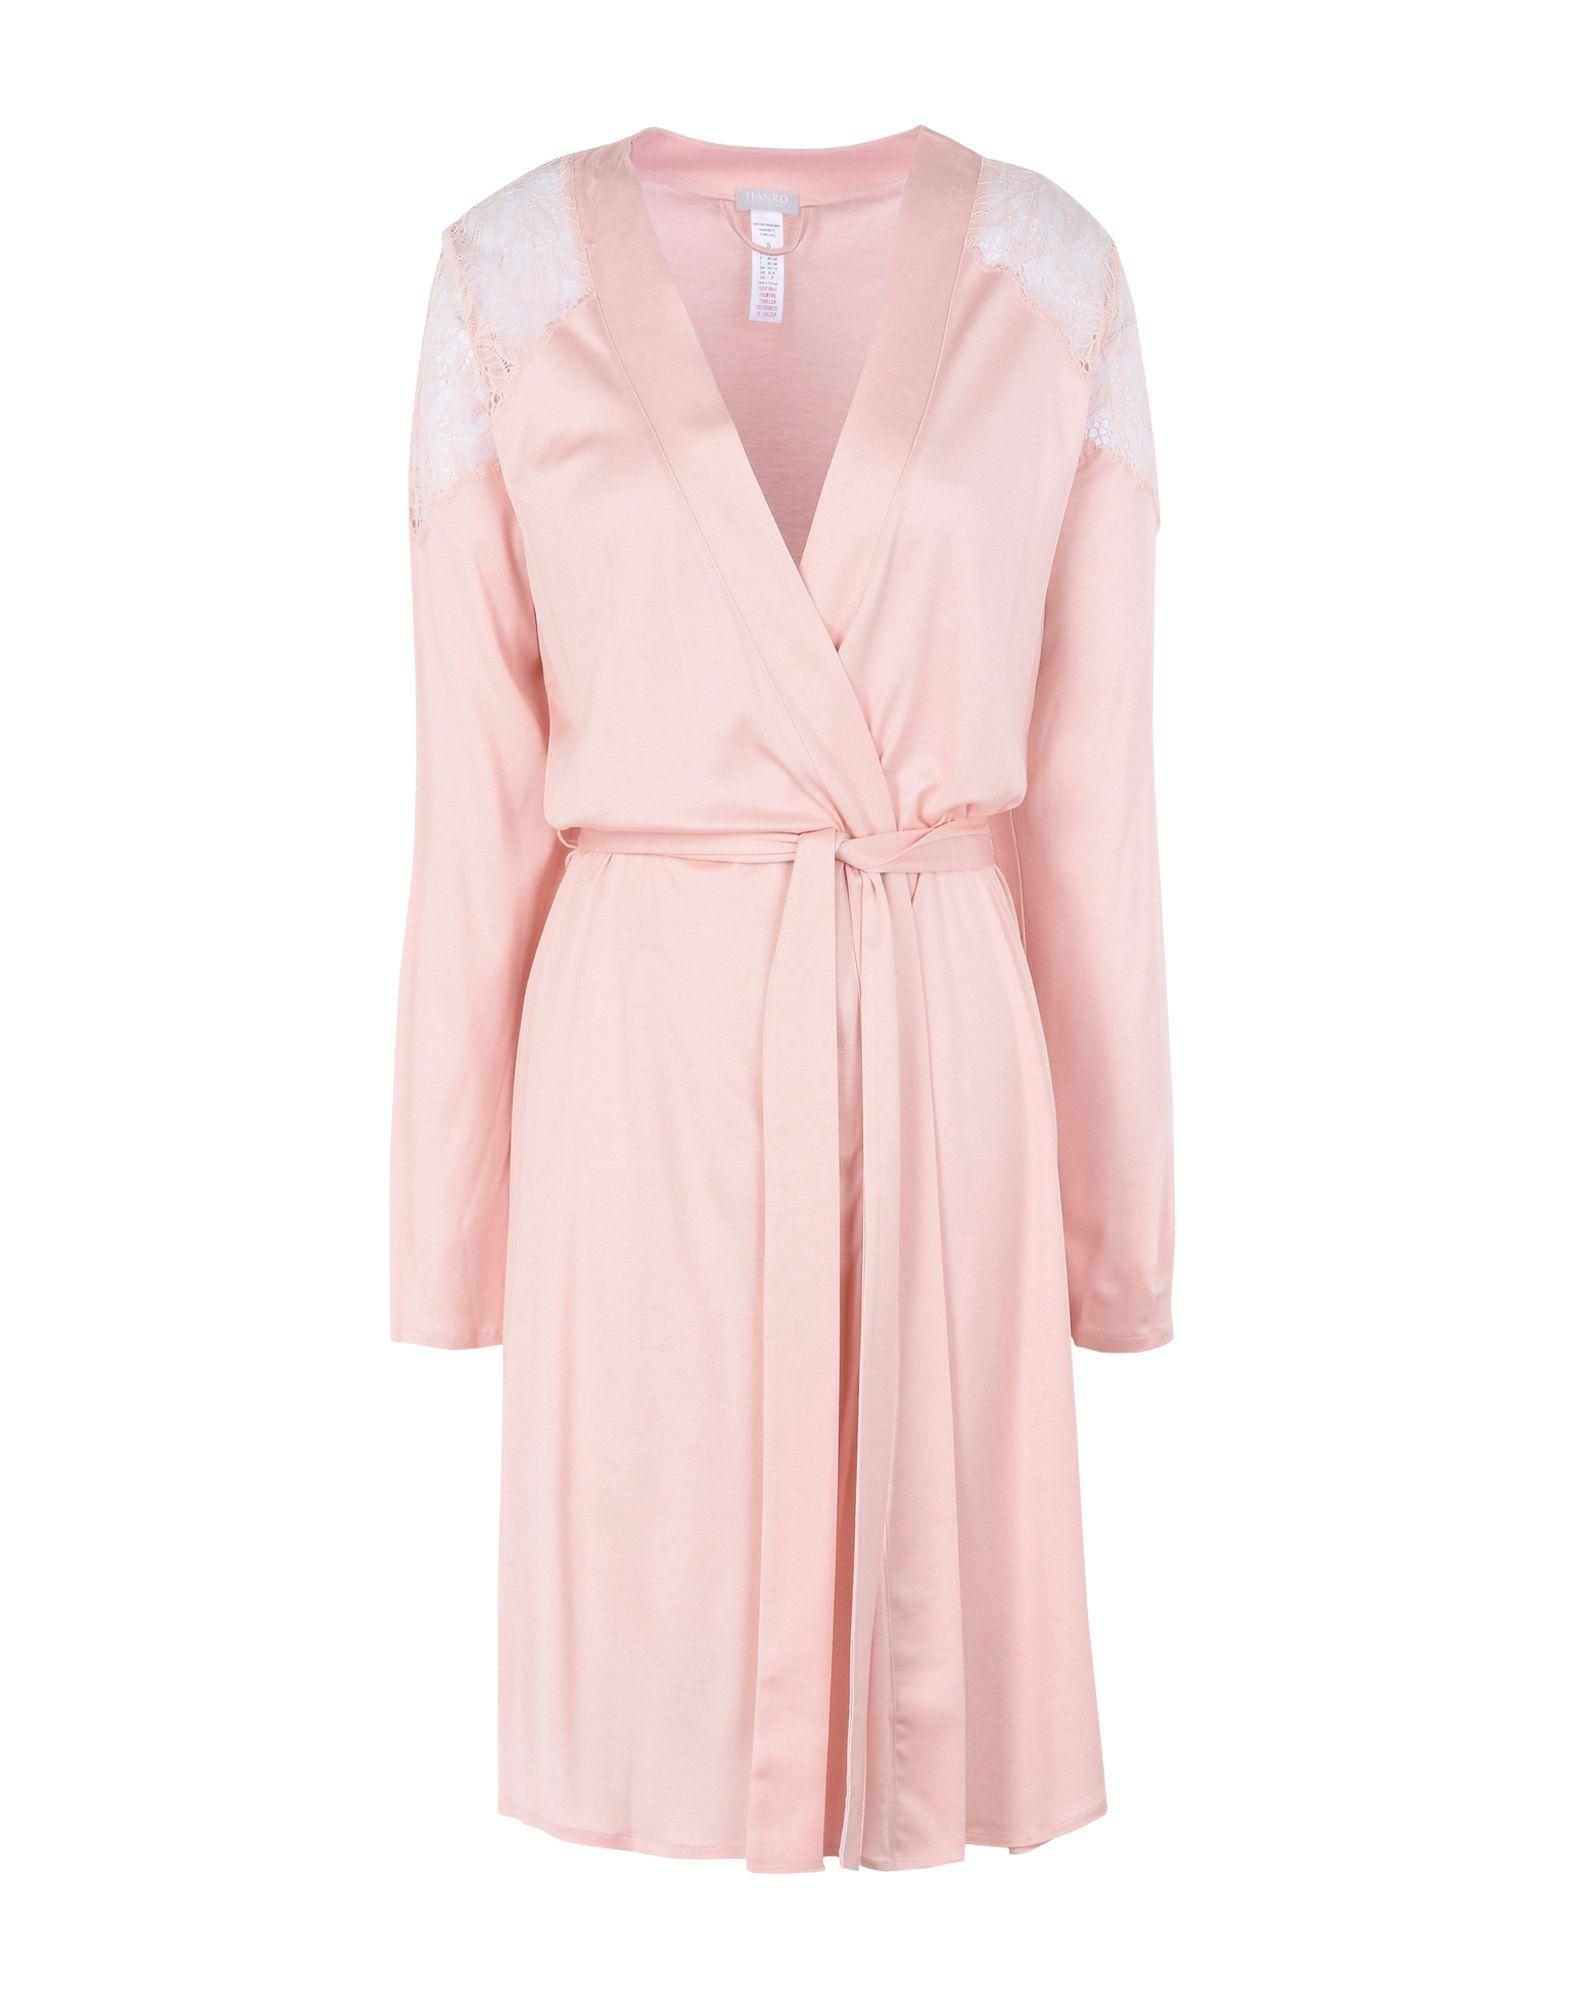 Hanro In Pastel Pink